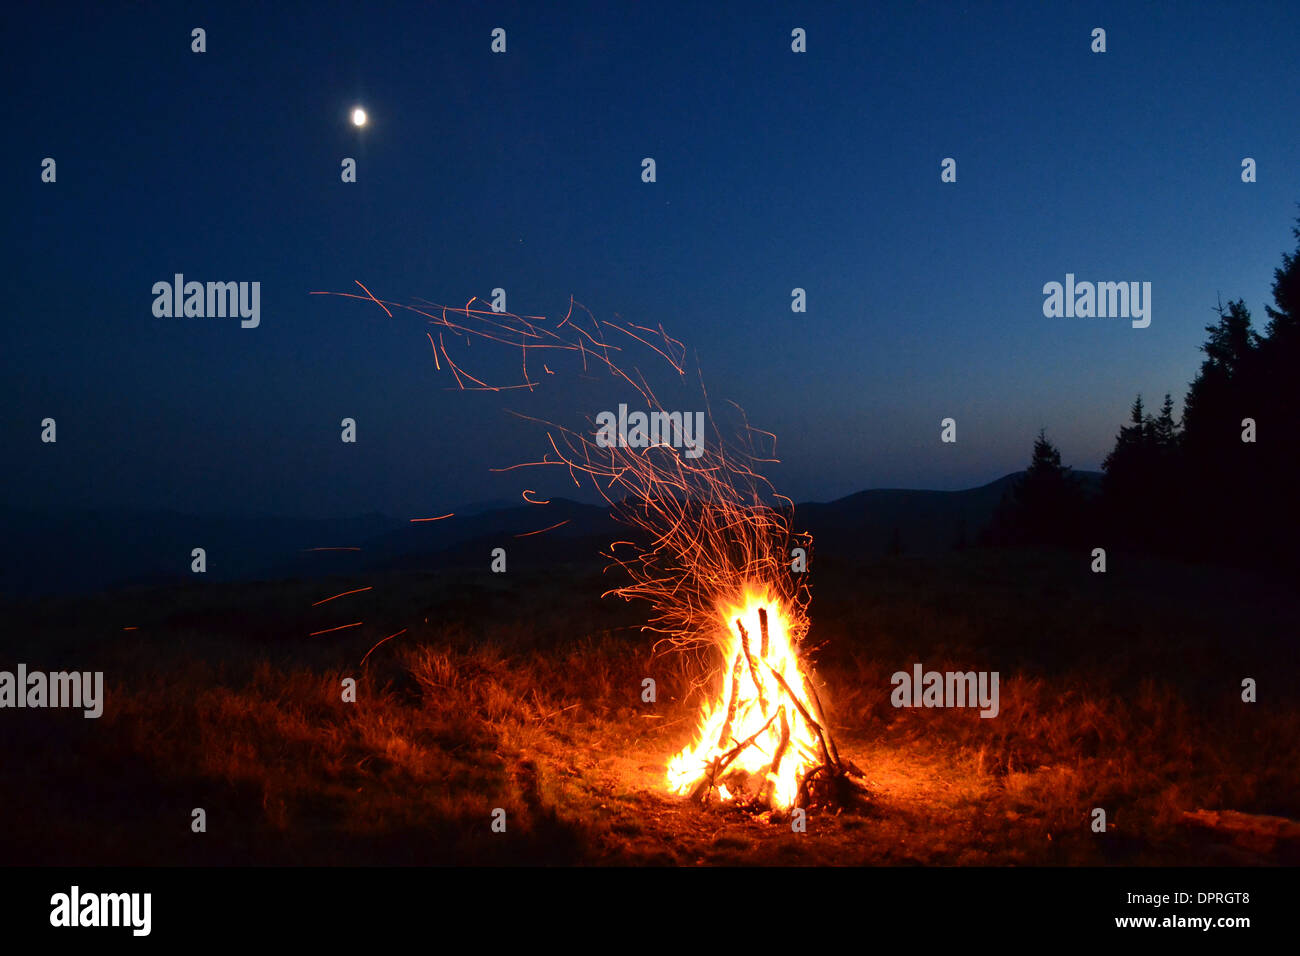 stick tree bonfire night orange grass campfire light smoke moon vesper sparks flame wood forest color outdoors sunset firewood - Stock Image